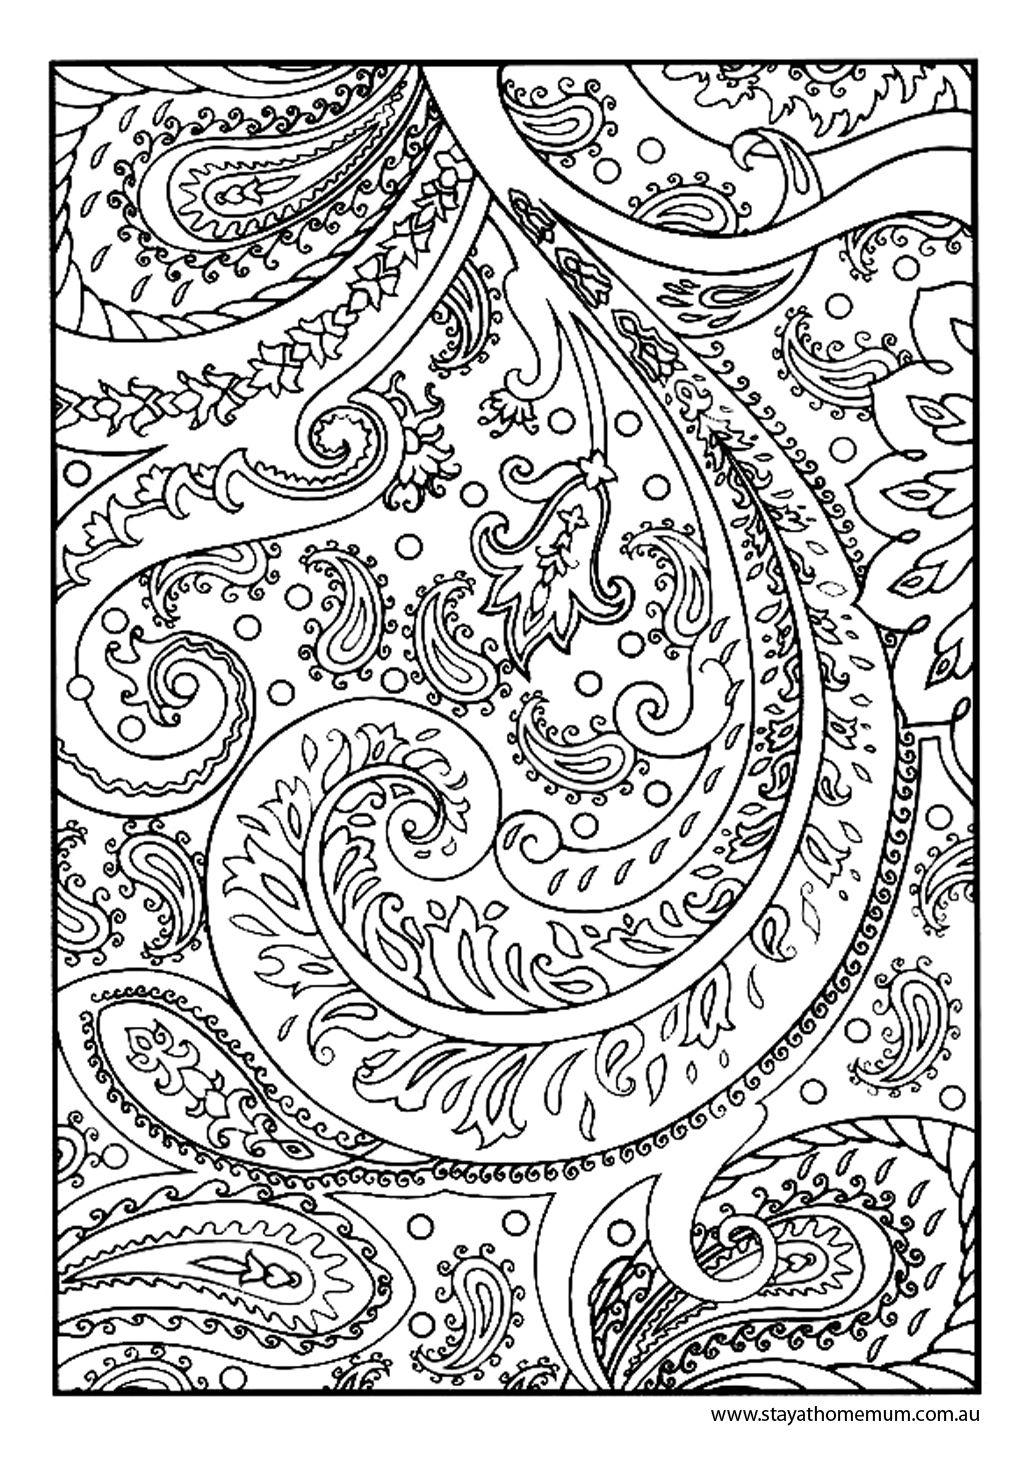 fun free printable colouring pages for kids and adults